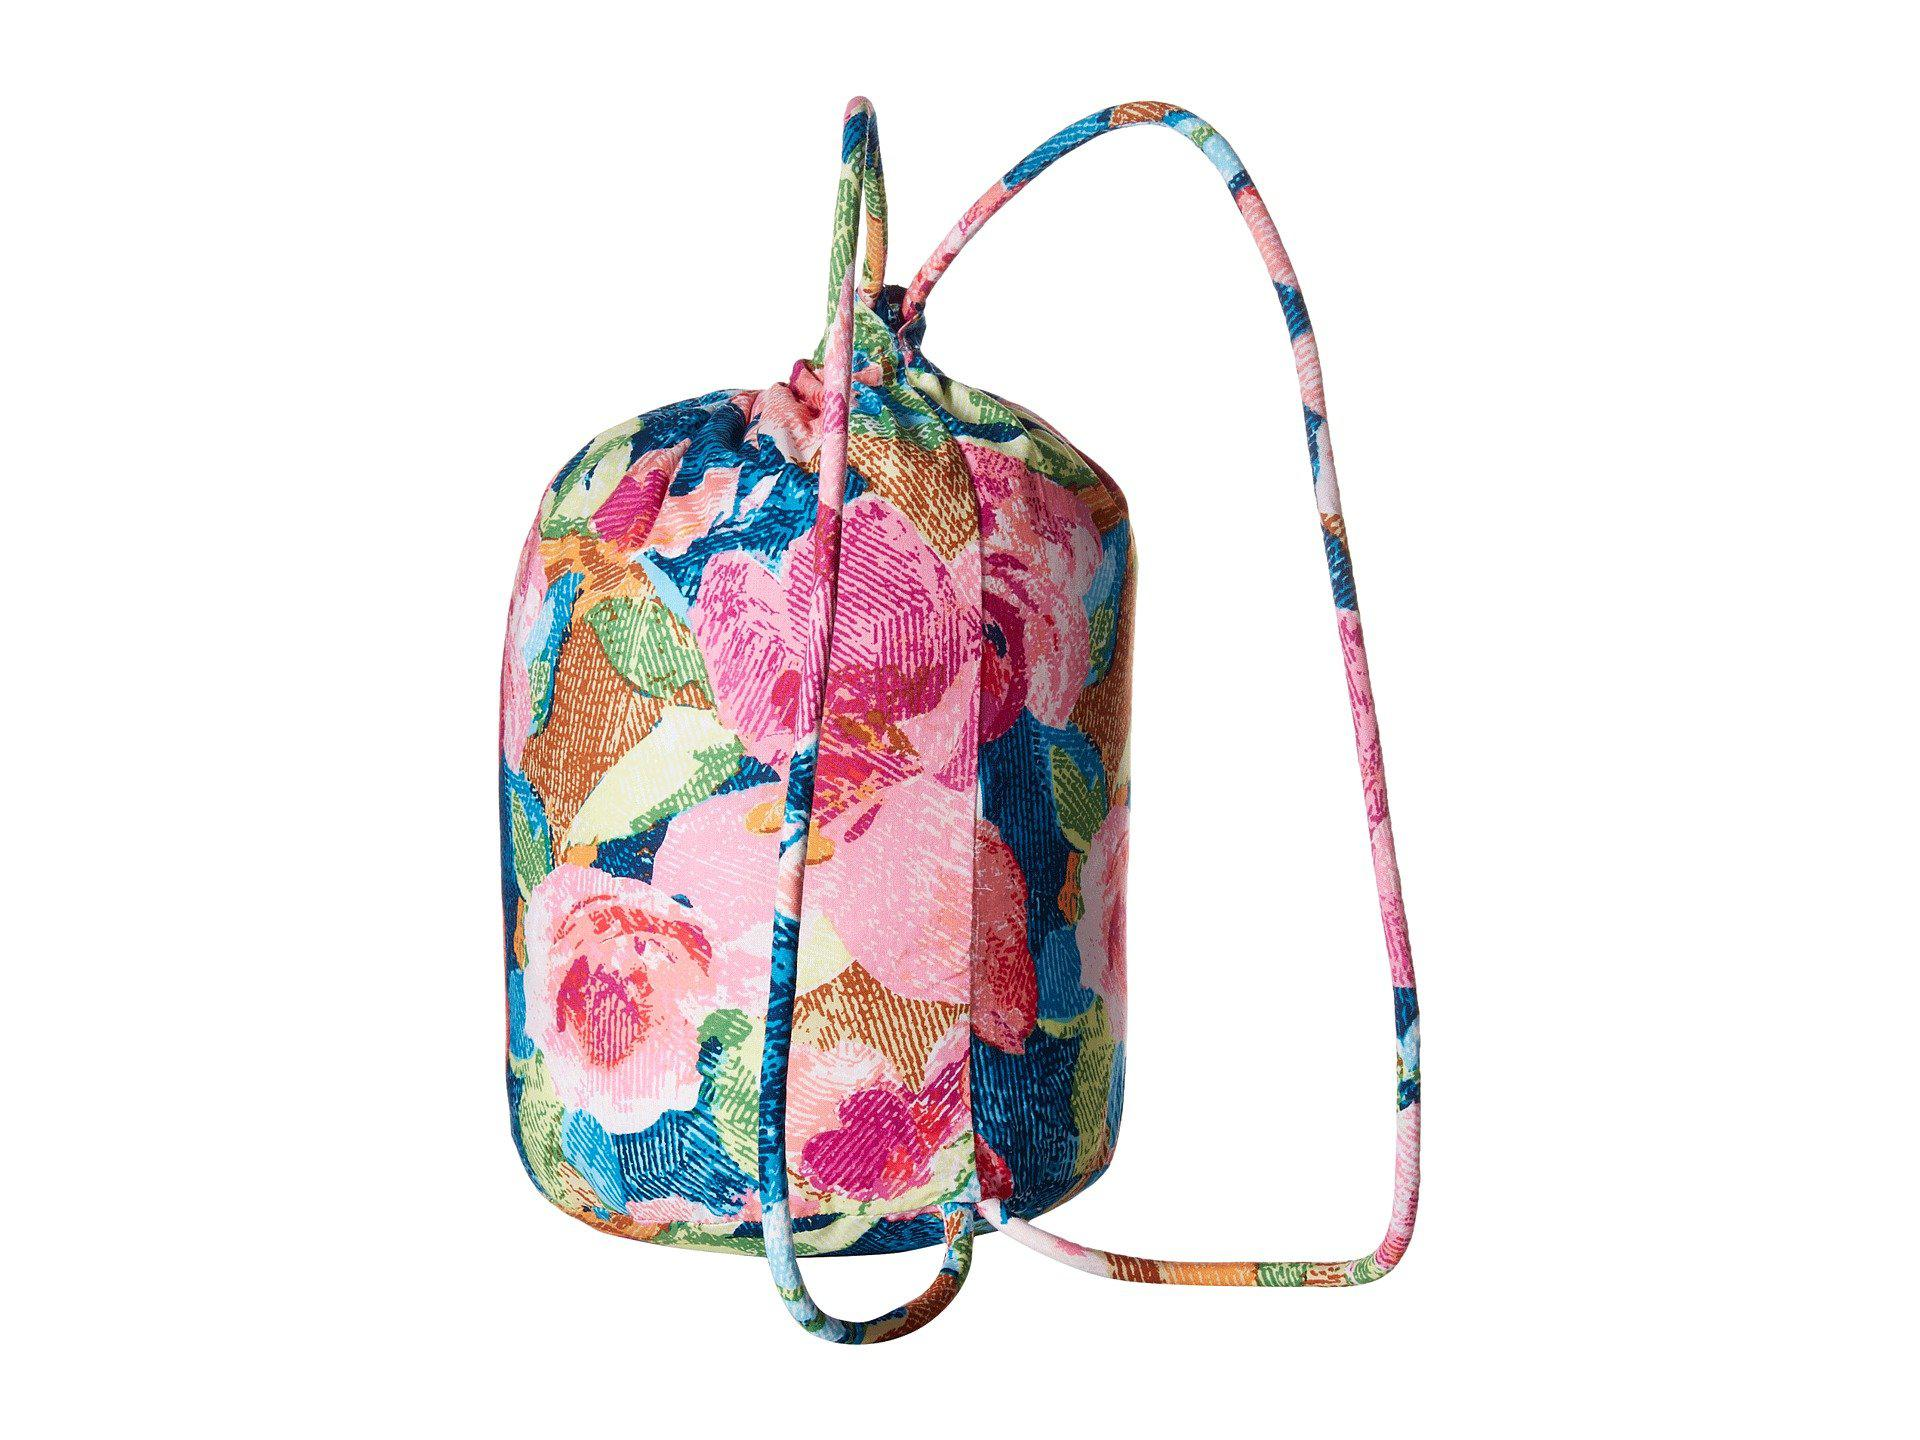 Vera Bradley - Multicolor Iconic Ditty Bag (wildflower Paisley) Bags - Lyst.  View fullscreen 69944d31c7ad8